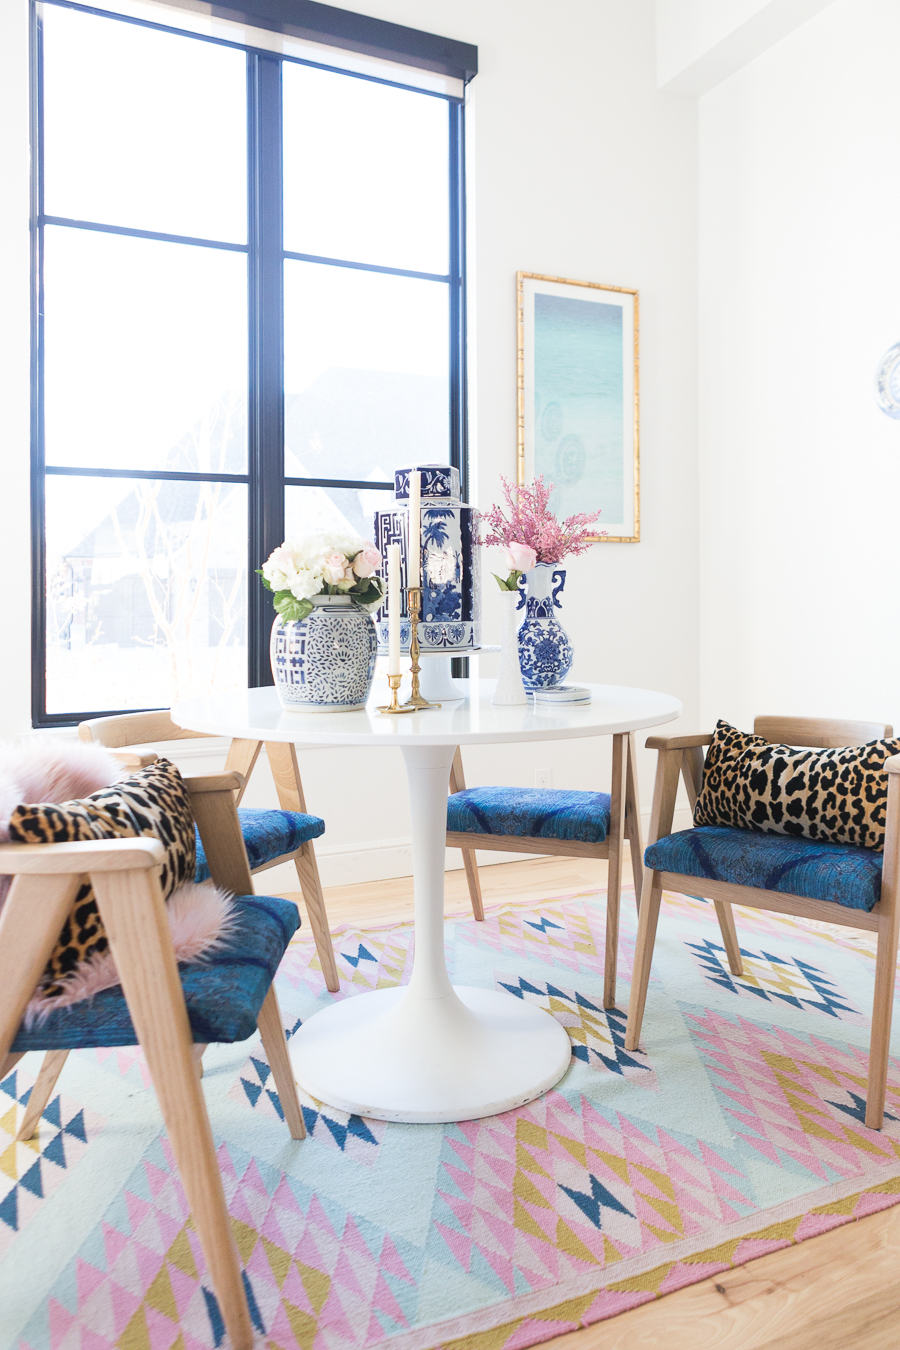 Rooms We Love Home Tour Modern Glam Breakfast Nook